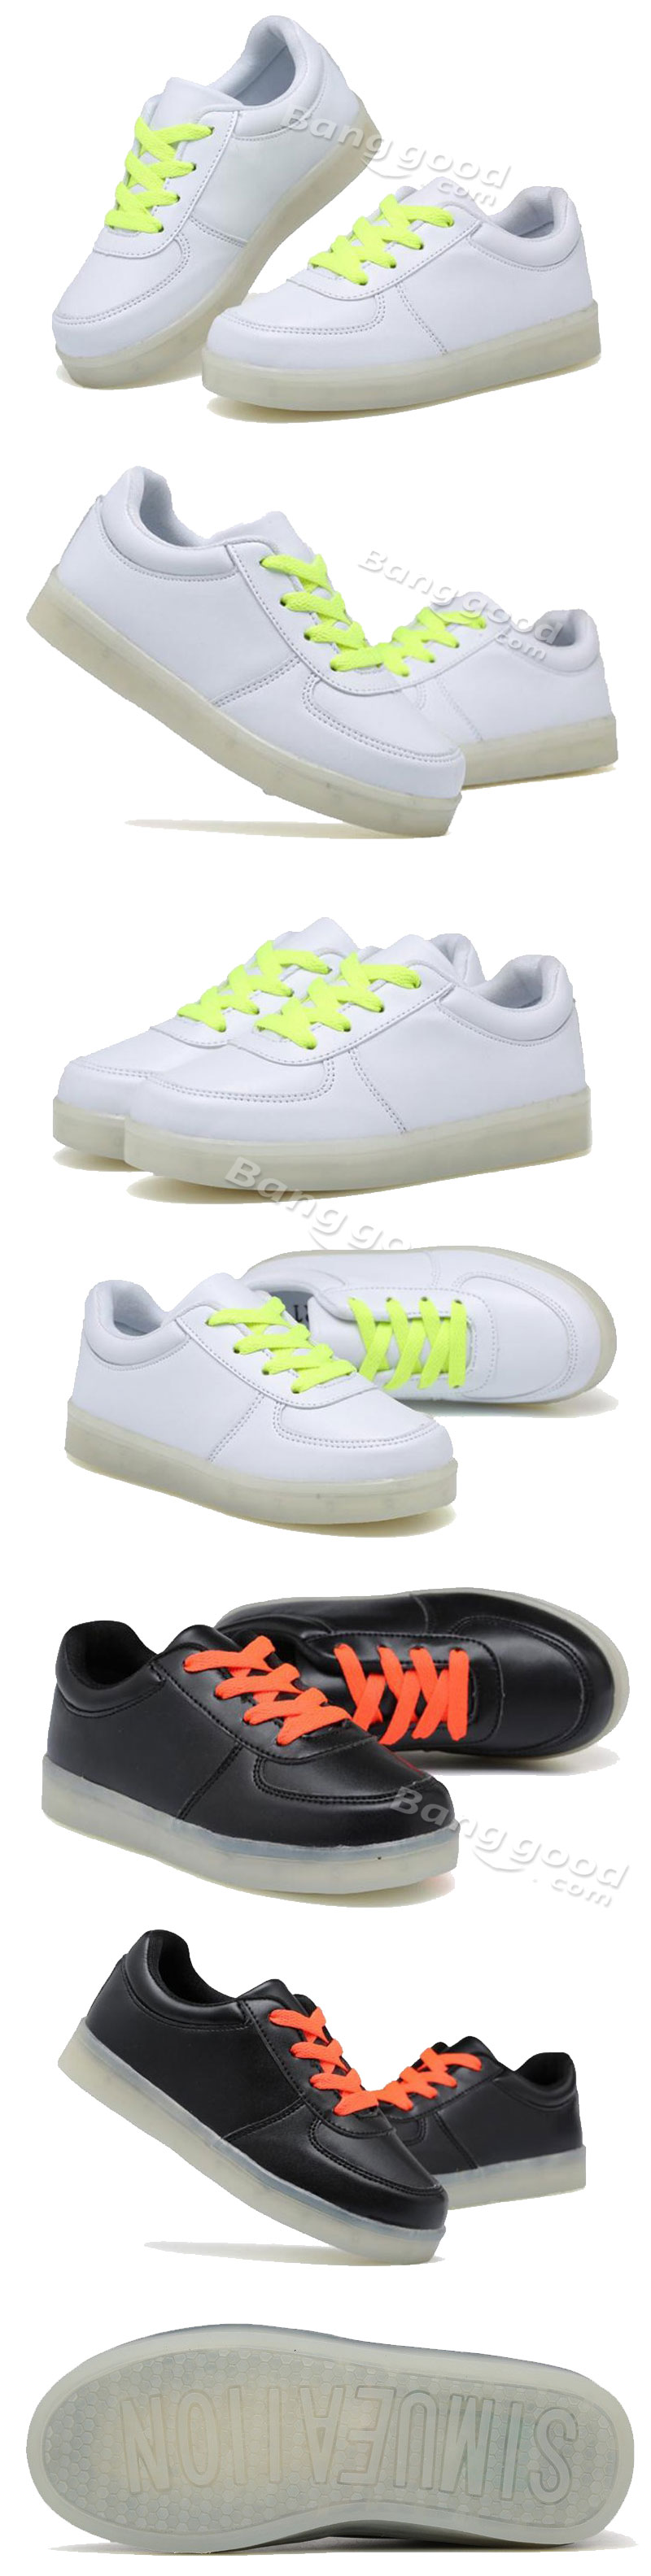 Children Teenager LED Light Sneakers PU Leather Kid Casual Shine Boys Girls Lace Sports Rubber Shoes